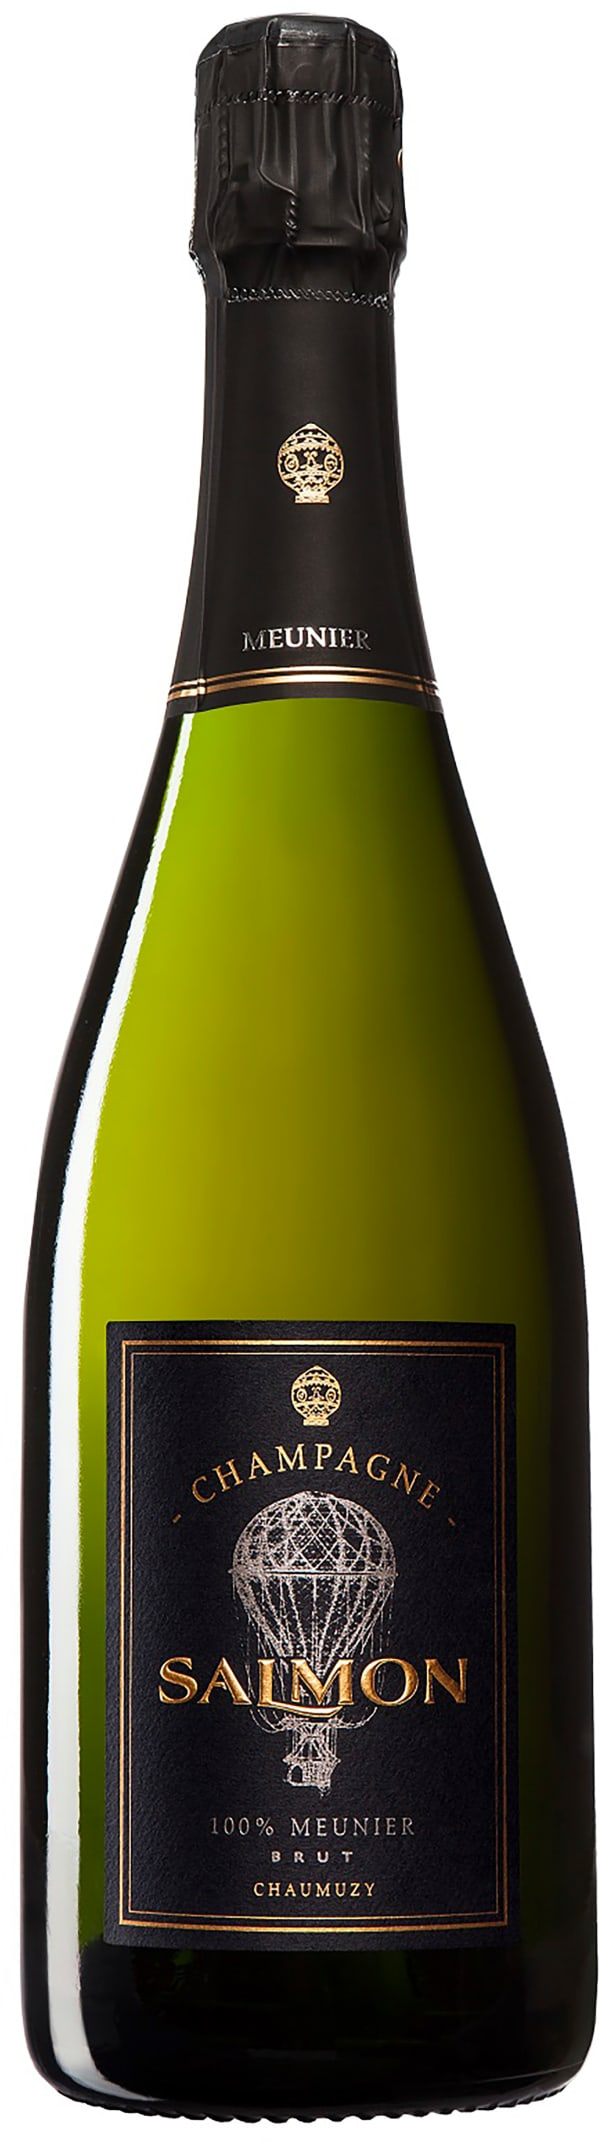 Salmon Collection Meunier Champagne Brut